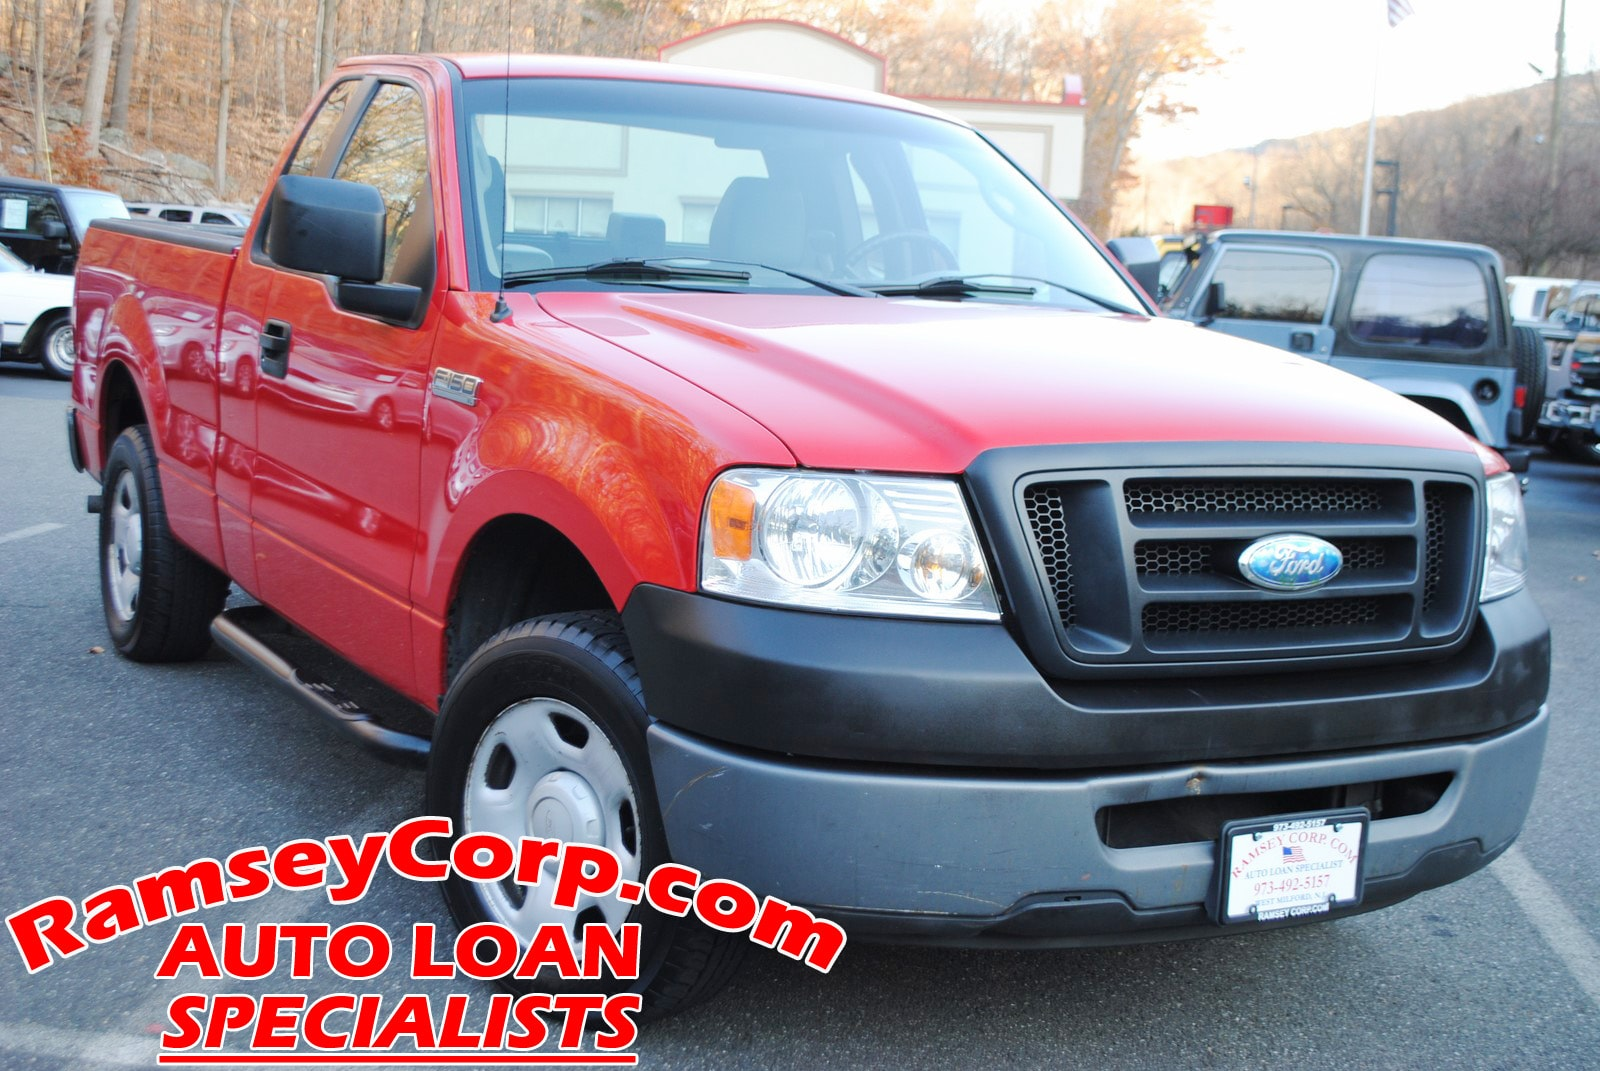 used 2006 ford f 150 for sale at ramsey corp vin 1ftrf12256nb272972006 ford f 150 xl 4 2 truck regular cab